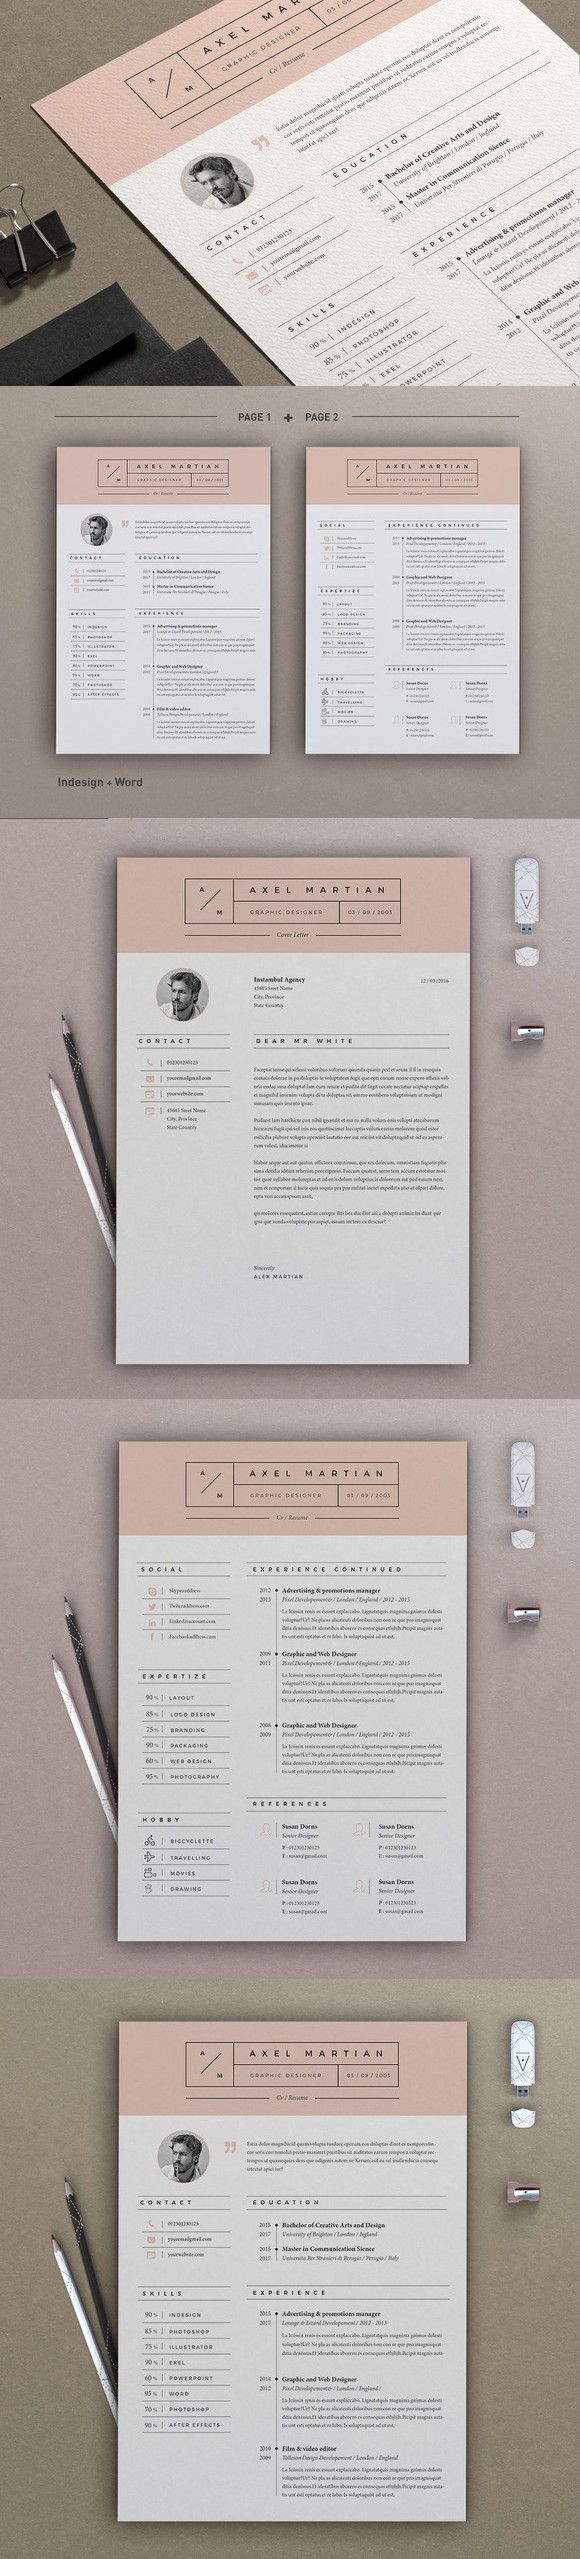 Resume Axel Pages Resume Templates Cv Template